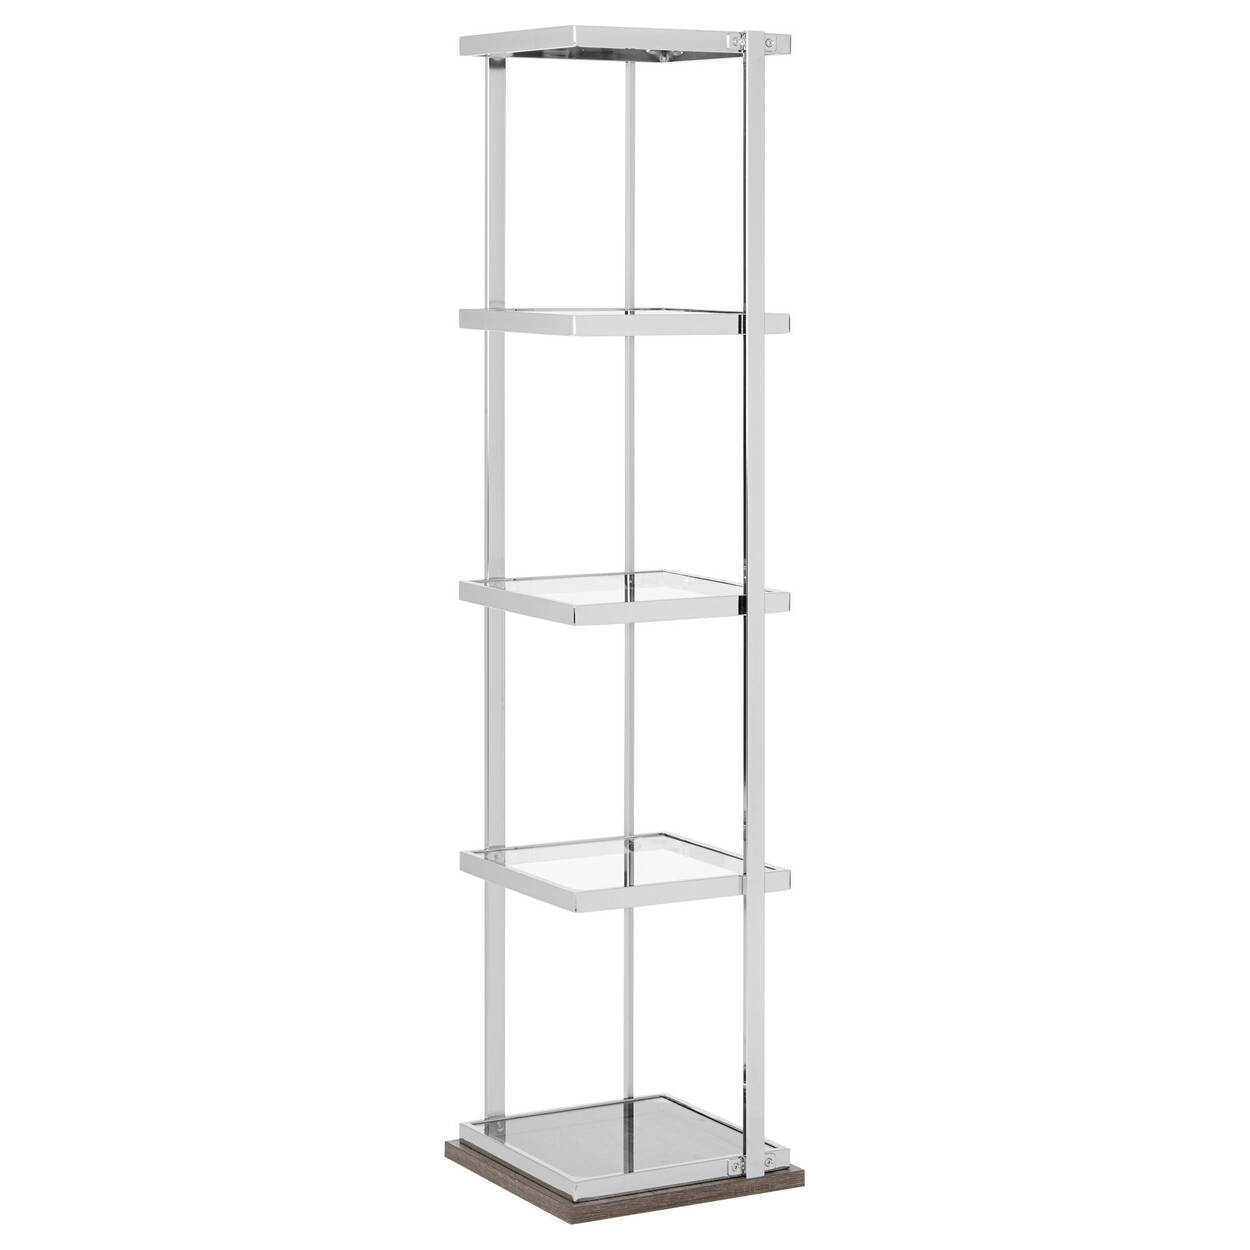 Chrome and Glass Shelf with Laminated Wood Base | Bouclair.com